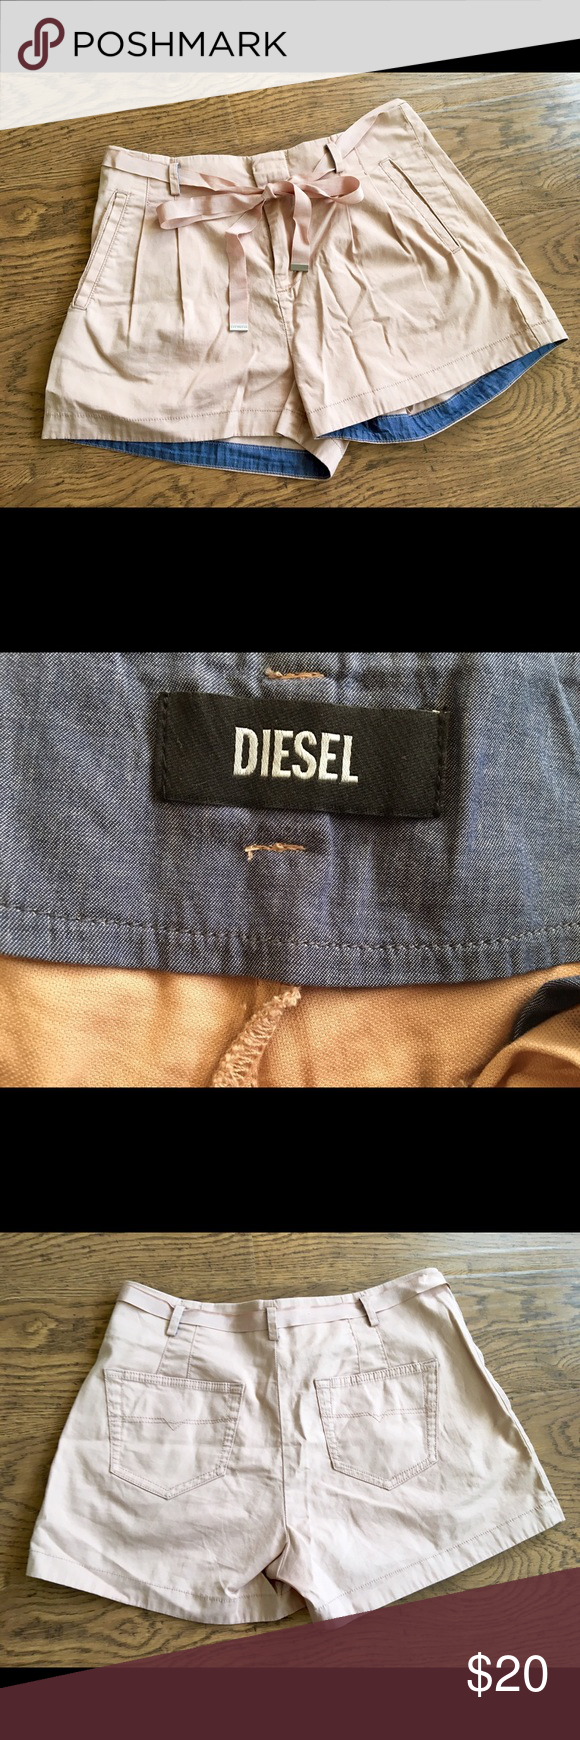 Diesel shorts never worn Super cute Diesel shorts in size 27. Never worn. Just cleaning out my closet. Get lucky  Diesel Shorts